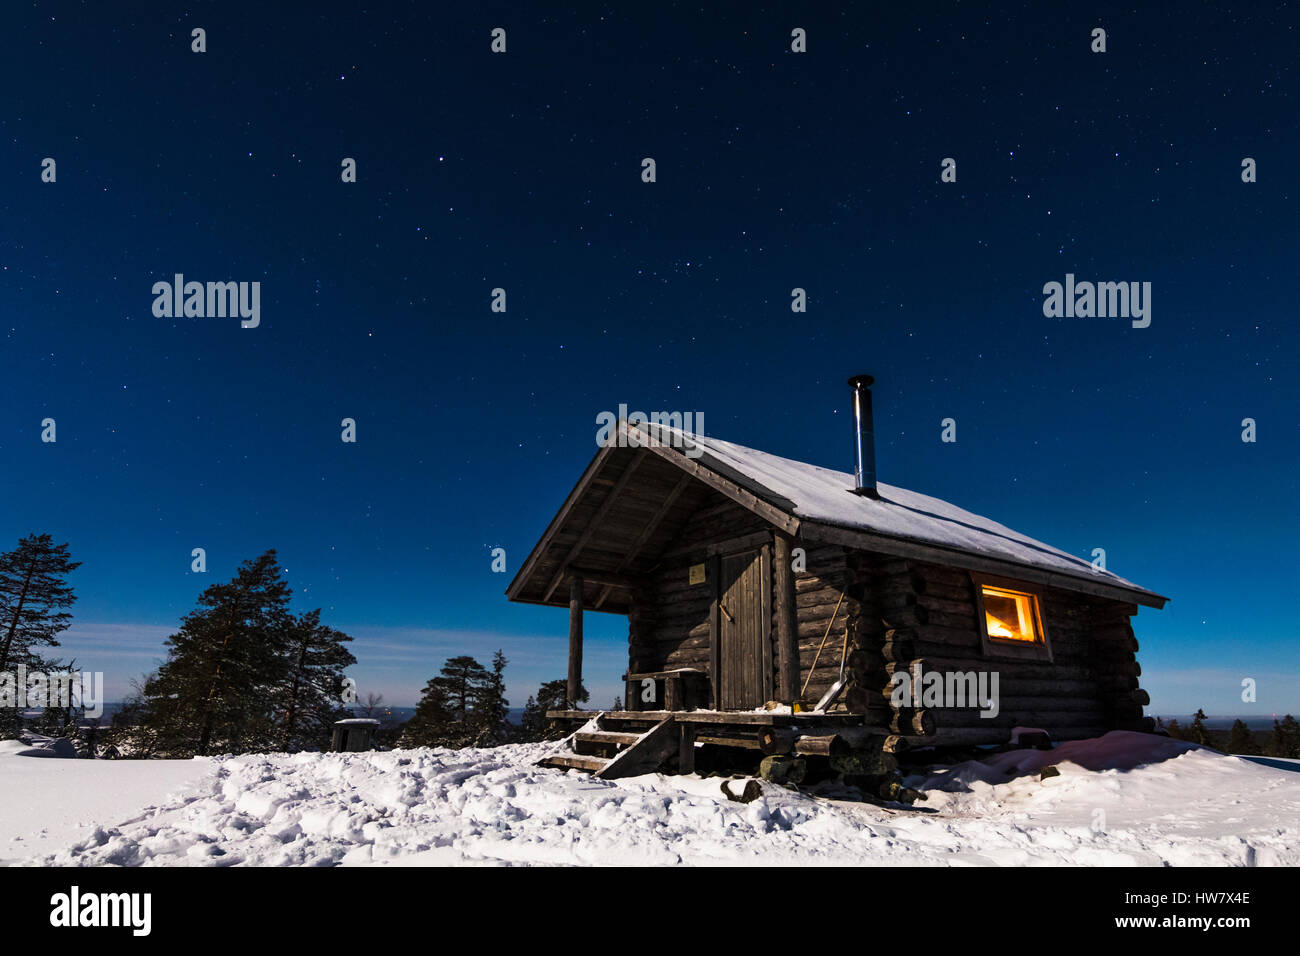 Kivalo open wilderness hut - Stock Image